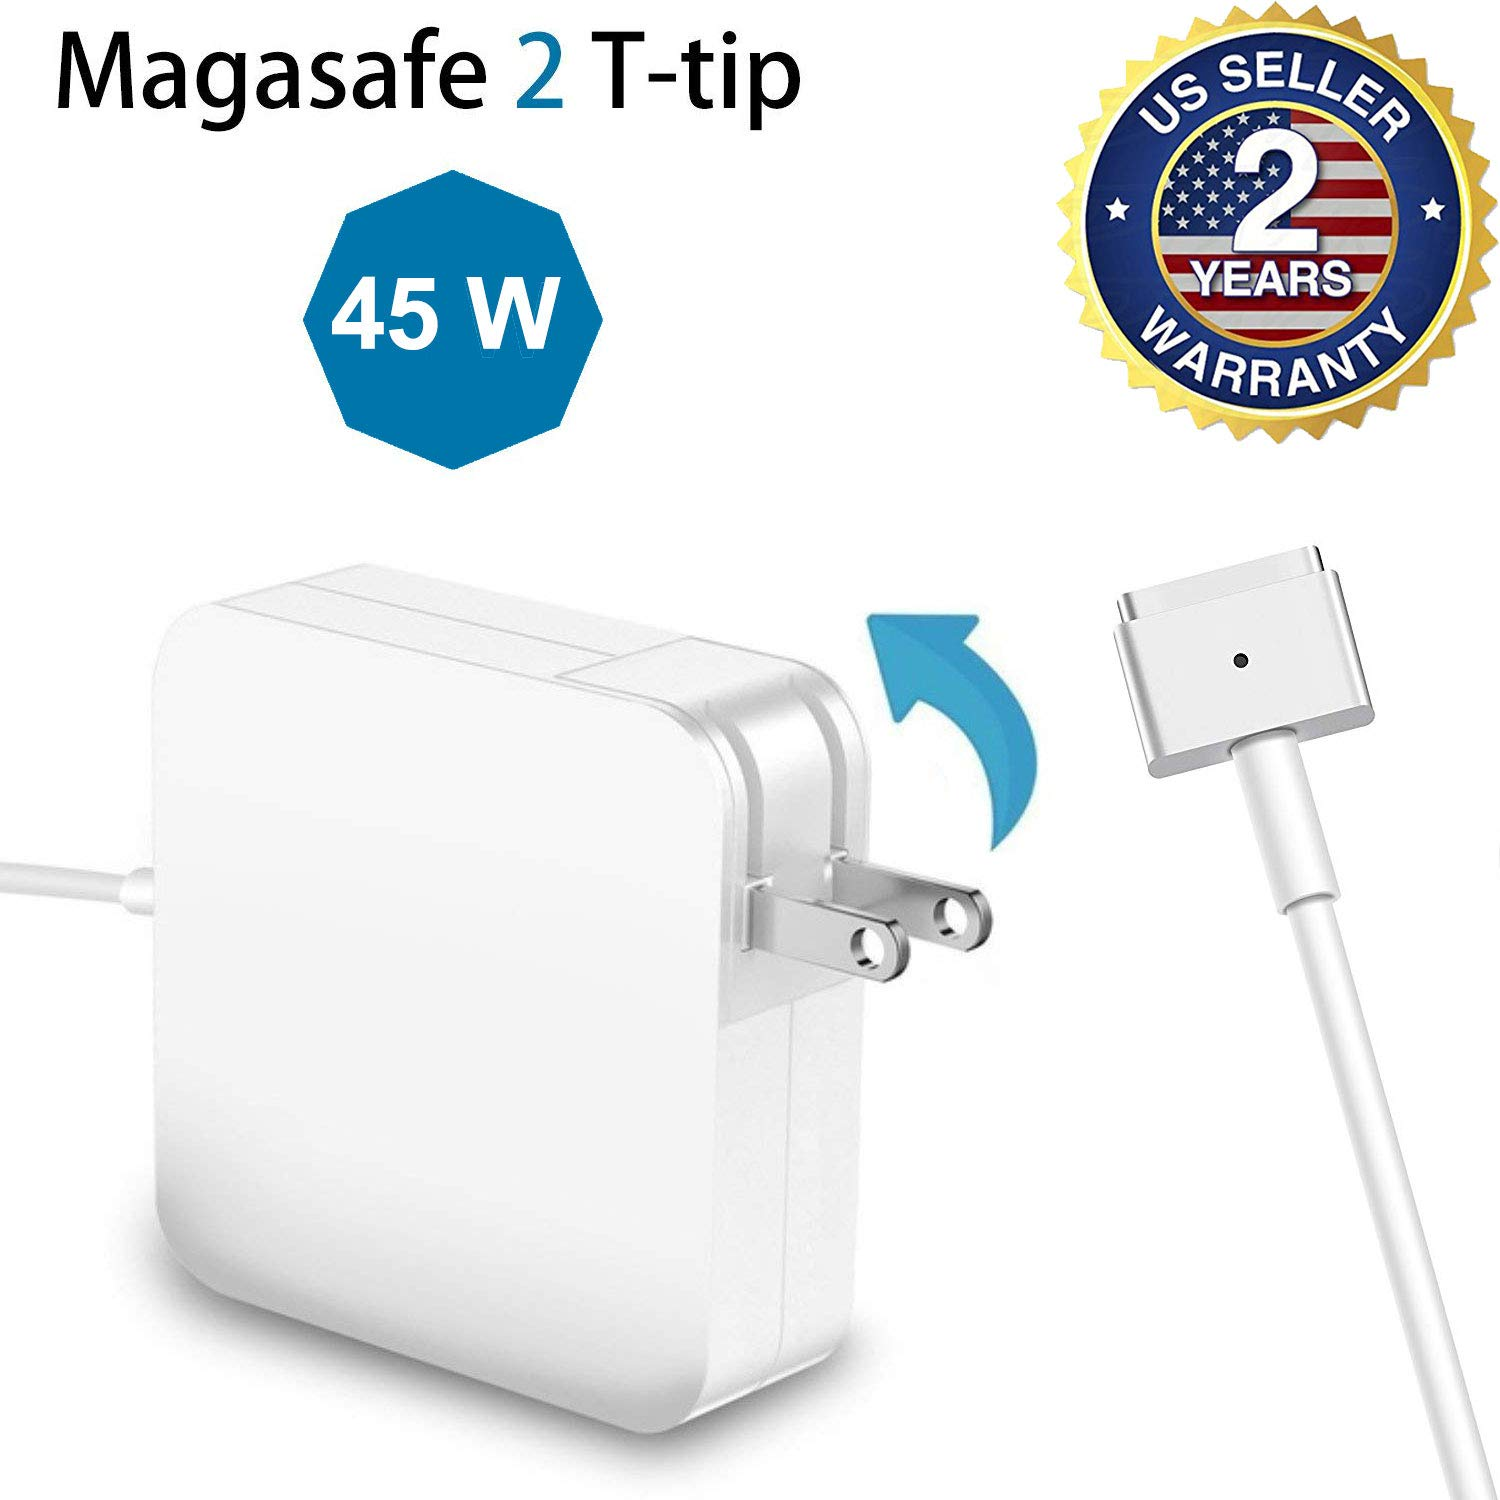 TrophyRak for MacBook Air Charger 45W MagSafe 2 T-Tip Adapter Charger for MacBook Air 11-inch and 13-inch After Mid 2012